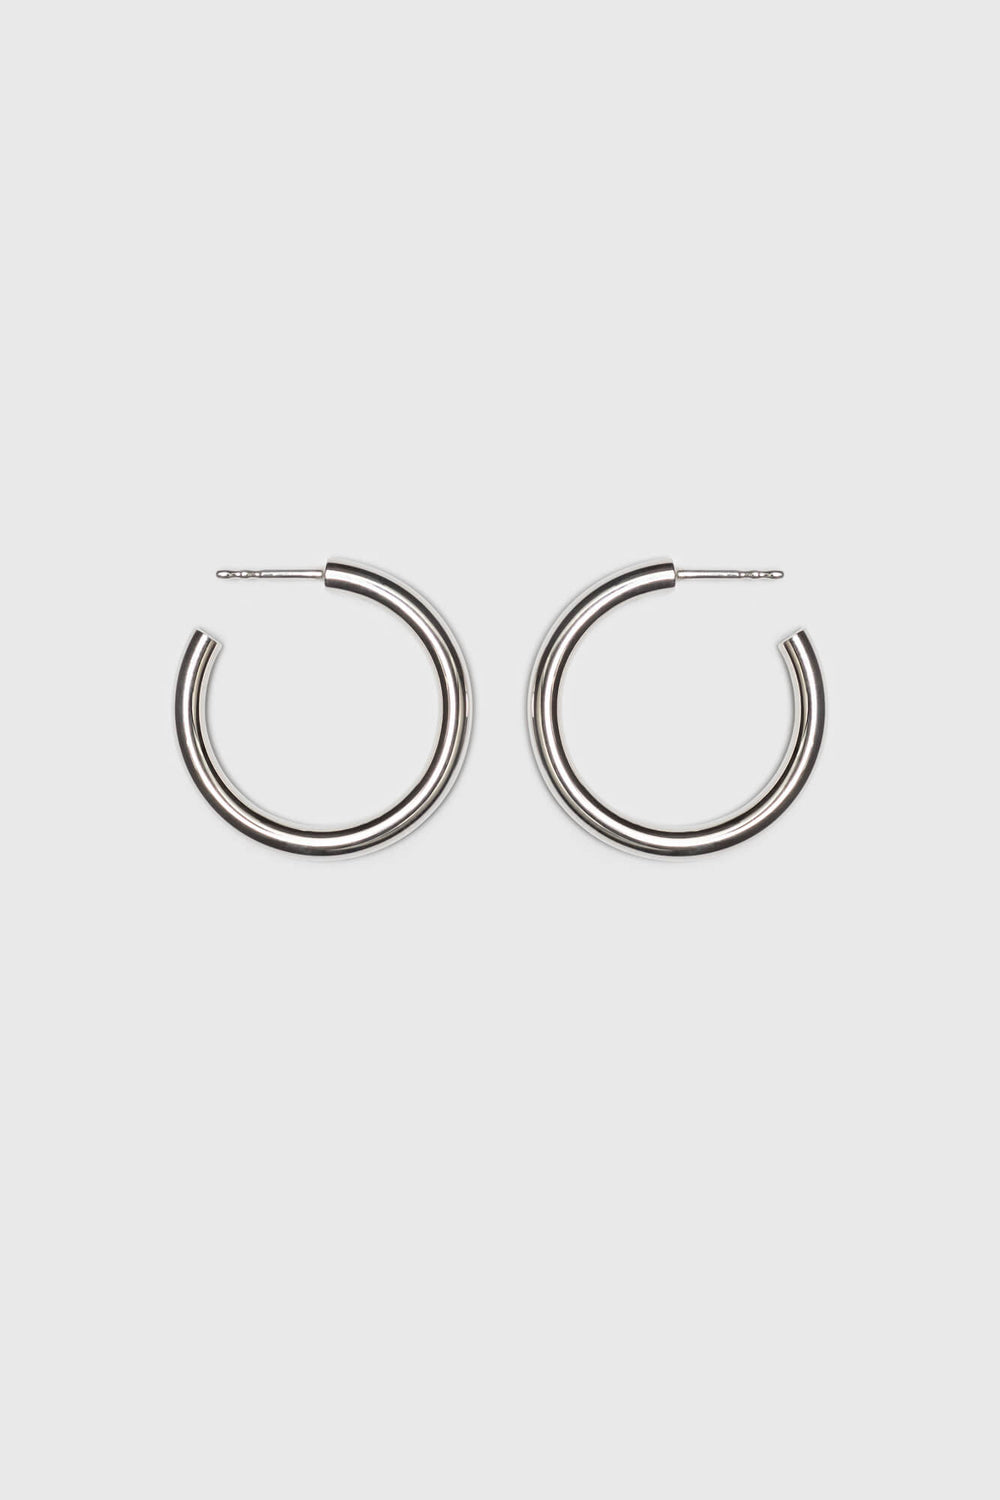 Big hoop earrings made of a bold silver wire. Fine jewelry handmade in Berlin.